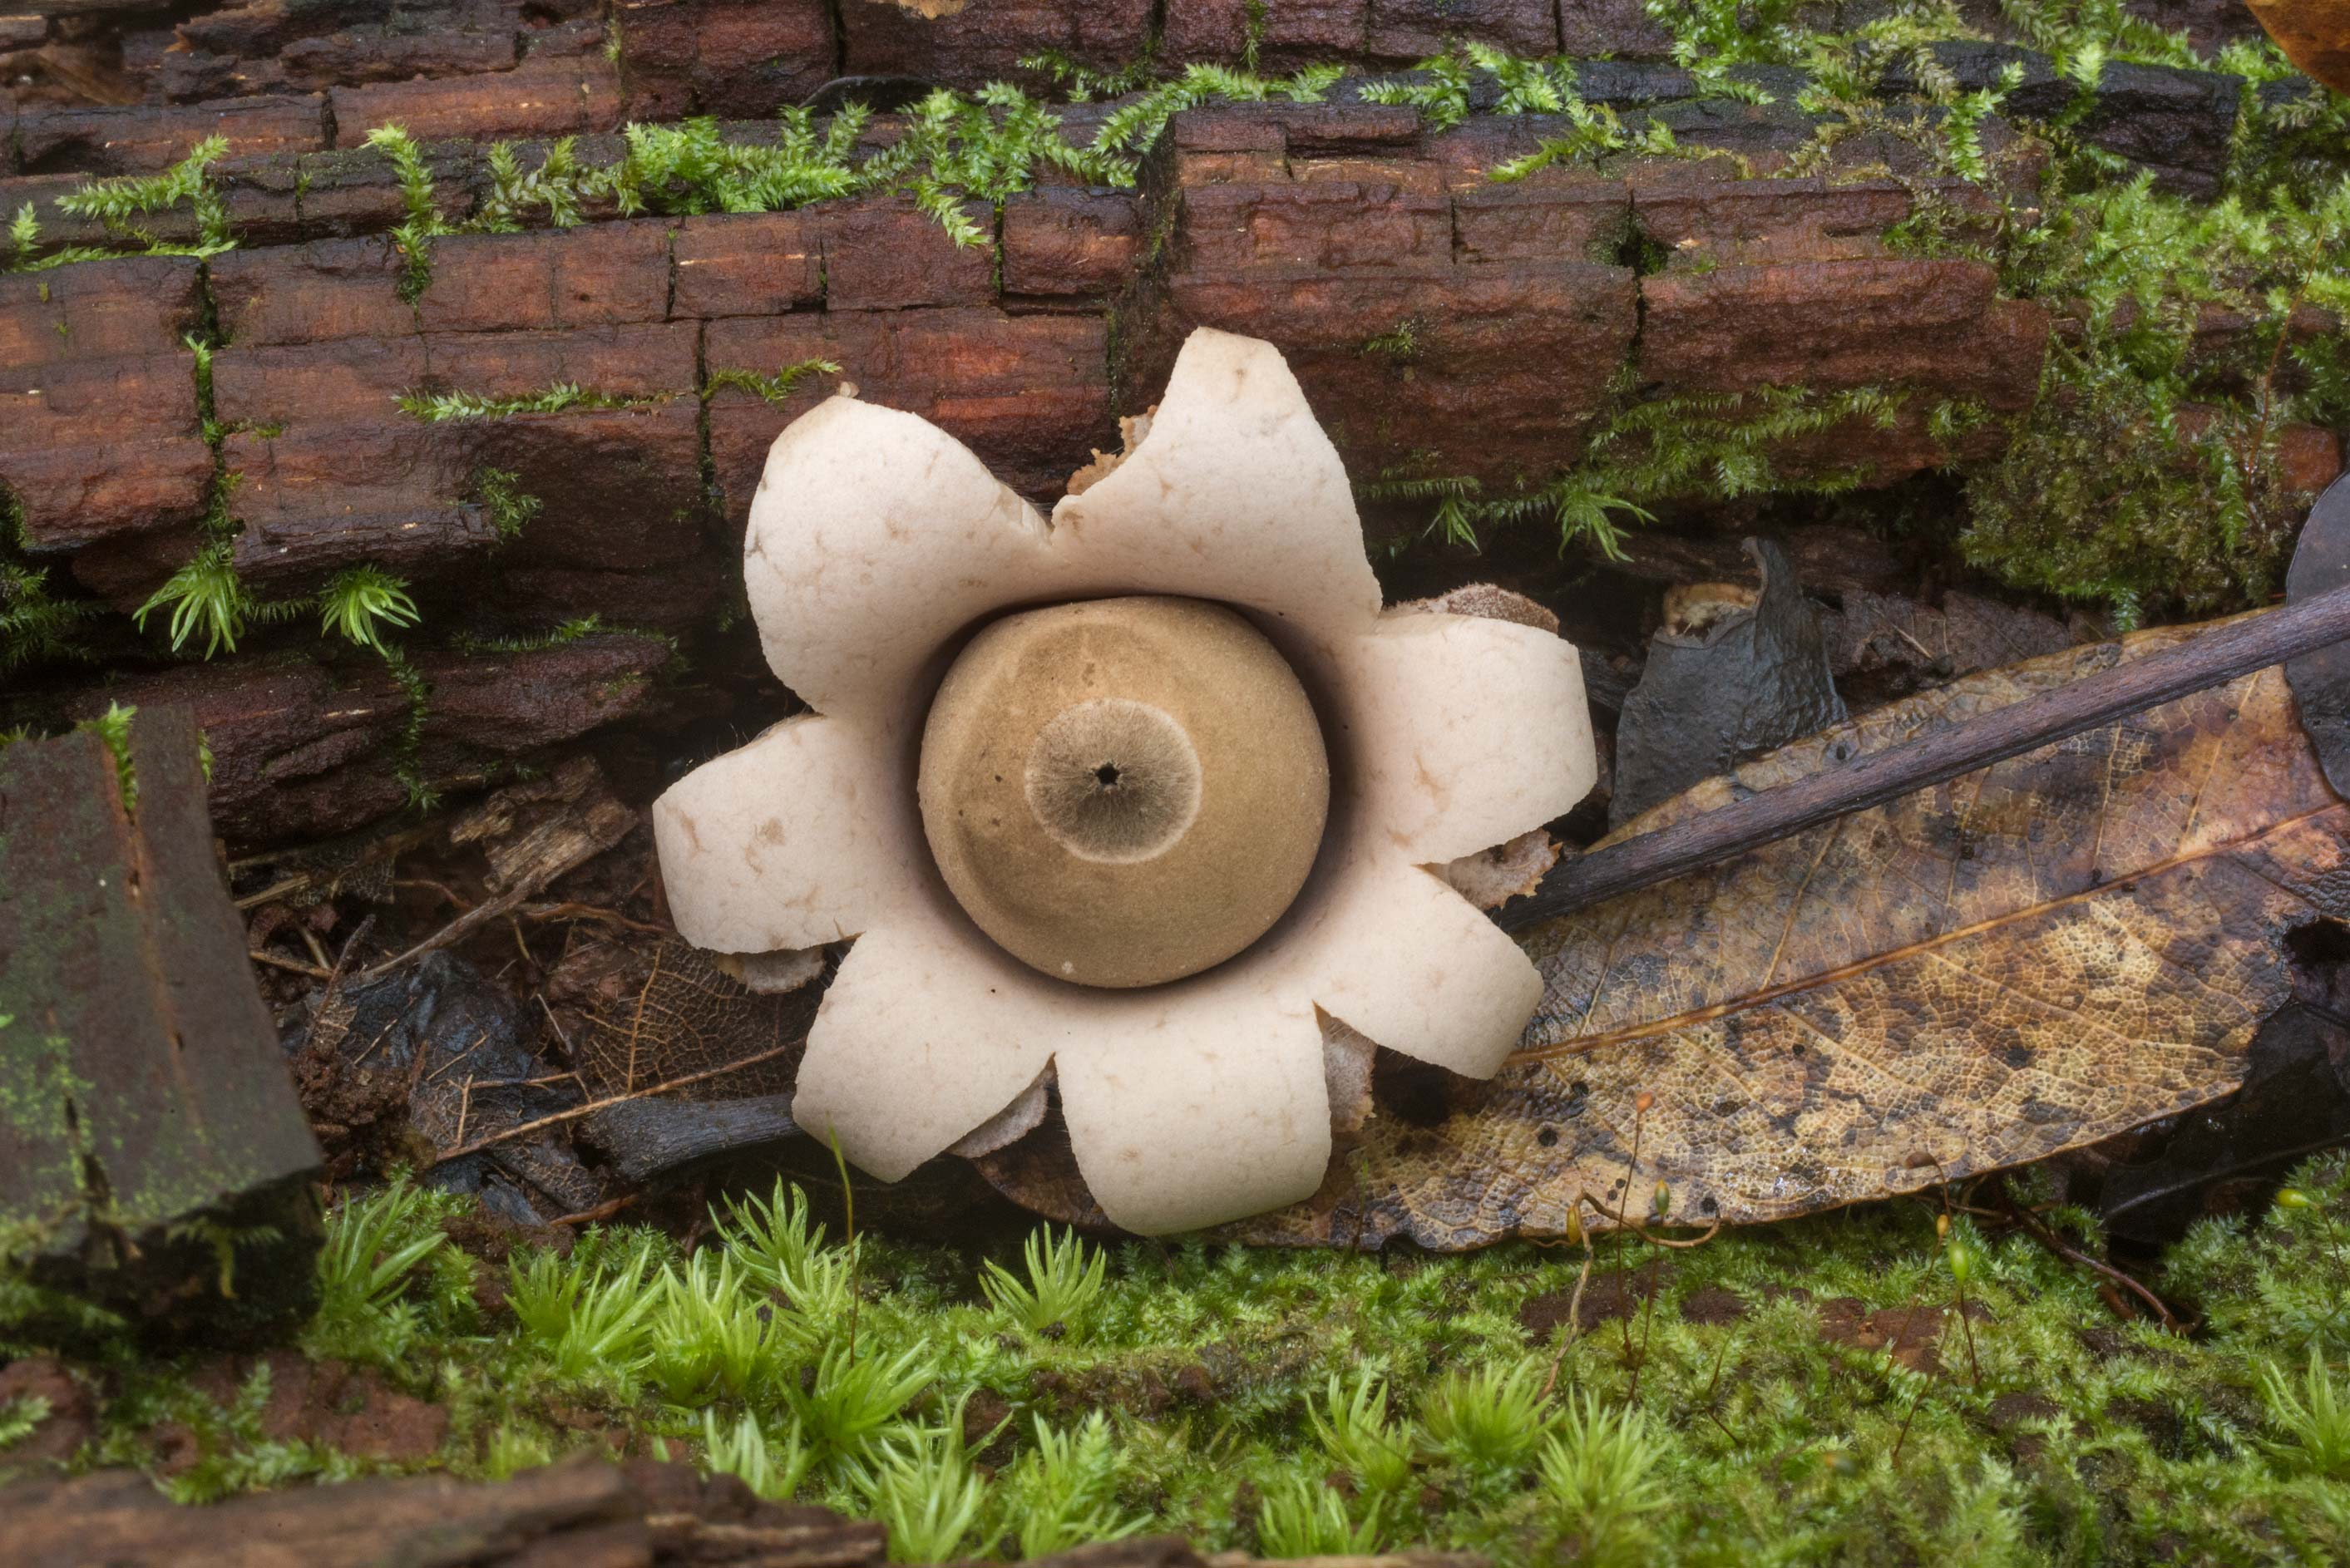 Earthstar mushroom Geastrum saccatum on rotting...National Forest. Shepherd, Texas